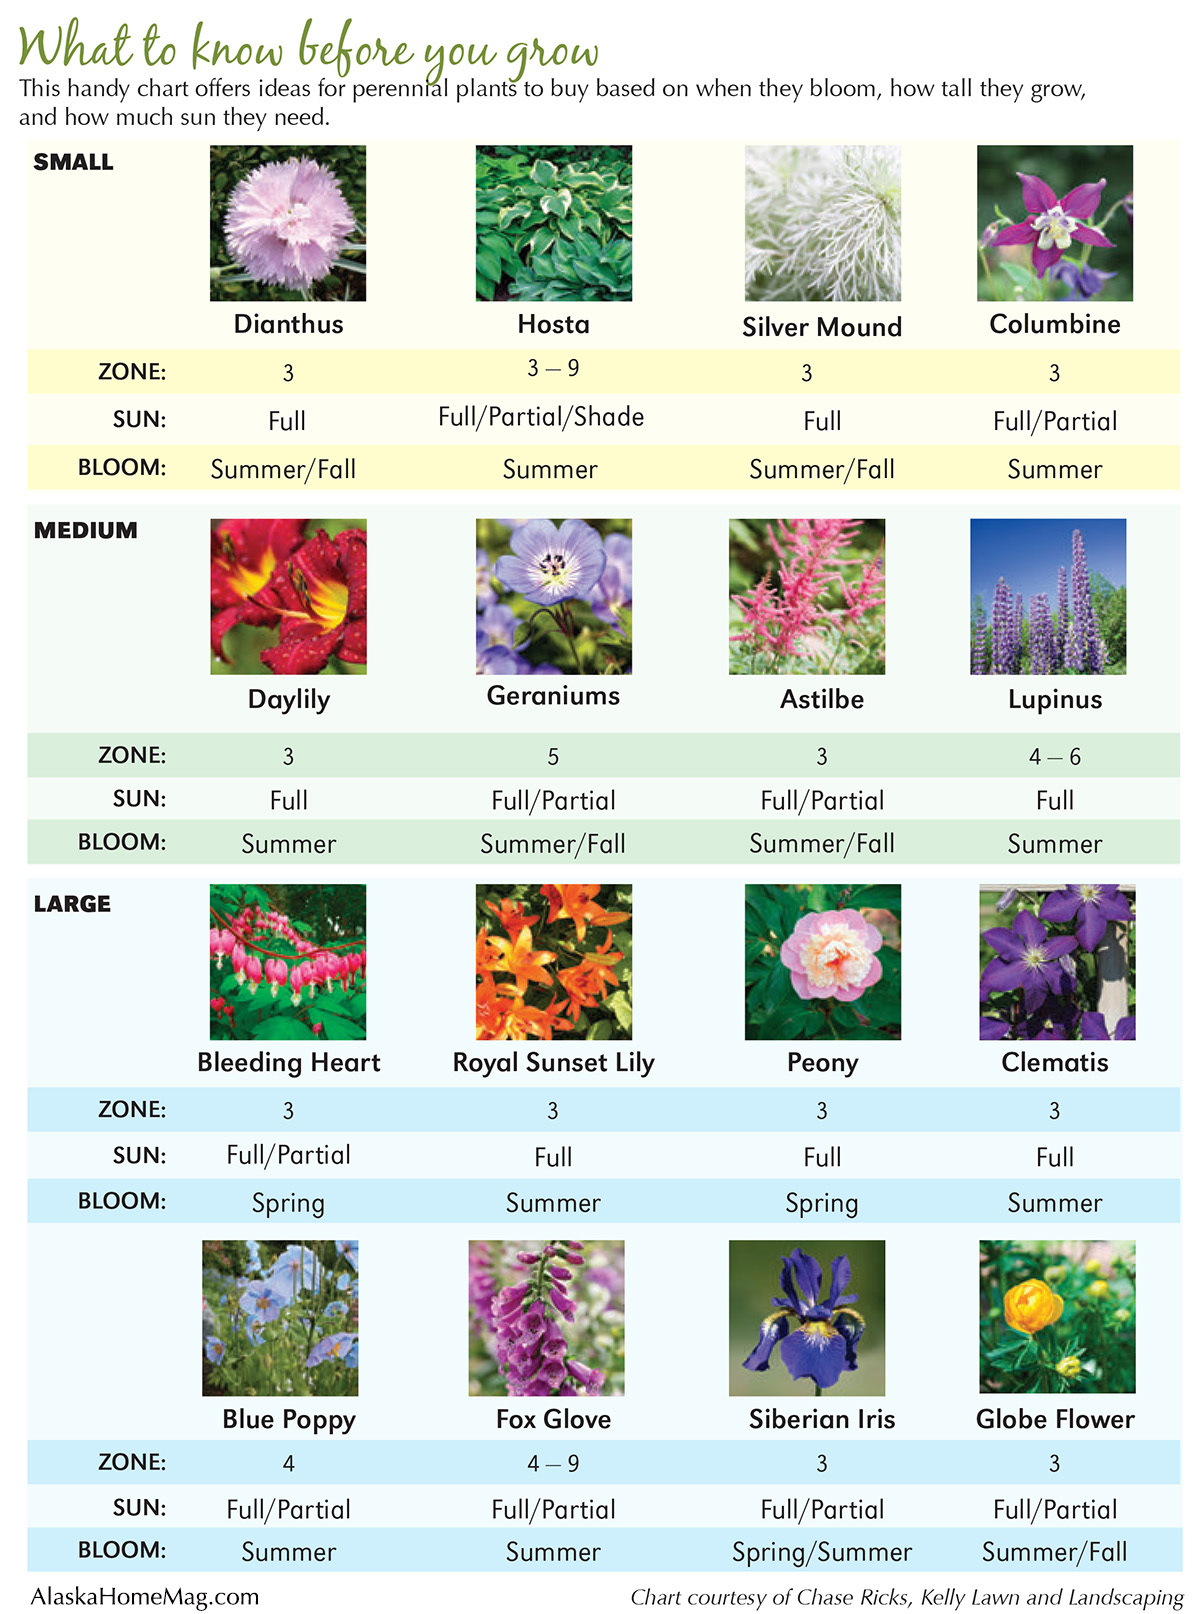 Alaska home outdoor living planning your perennials resources alaska botanical garden alaskabg kelly lawn and landscaping kellyllc and ground effects landscaping and snow removal mightylinksfo